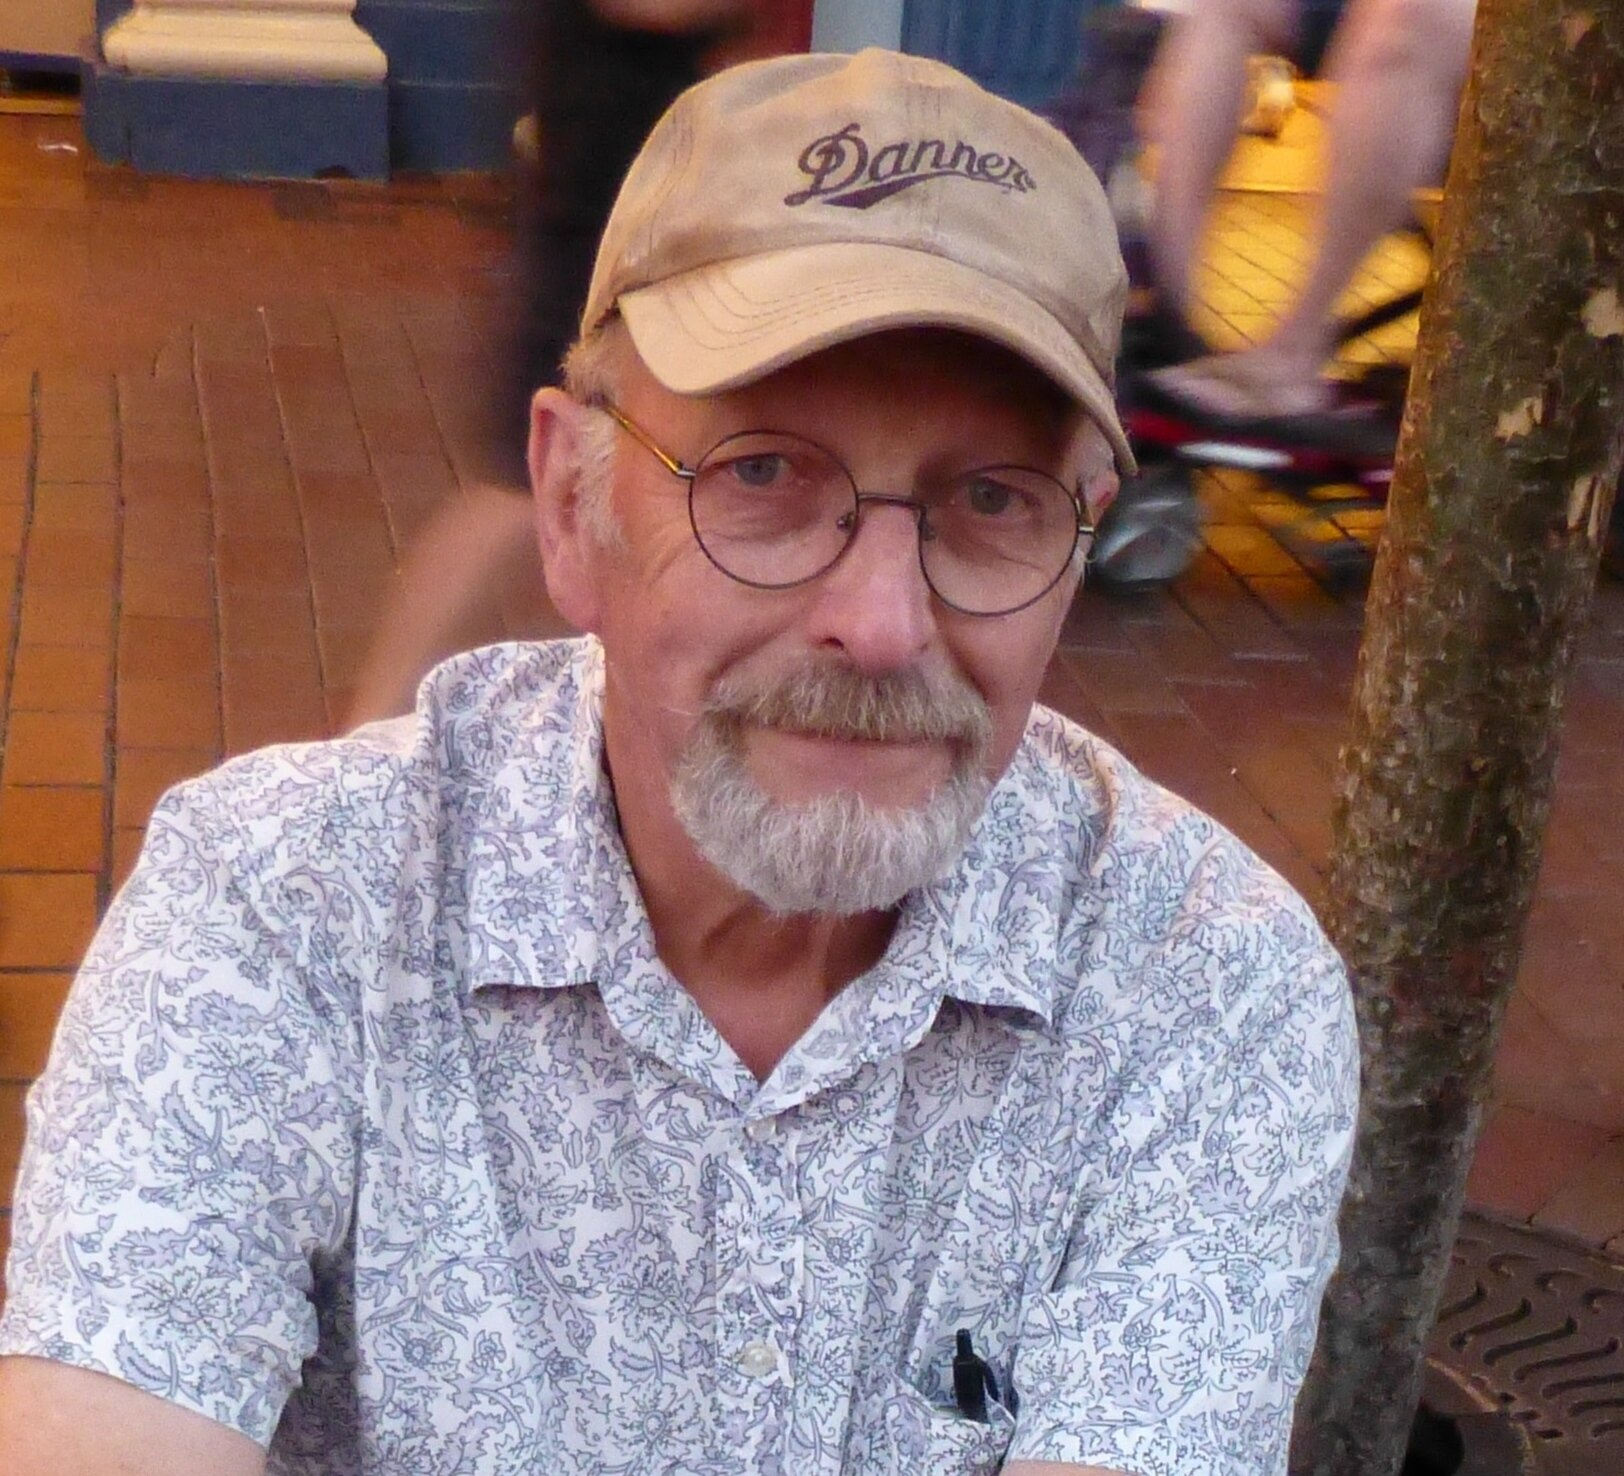 John Clark - Although a retired Physical Therapist, a friend recently told John that he has failed retirement. He enjoys serving others through his wood working skills and also building up and working his tree farm. He and his wife, Cathie, live on ten acres of woods six miles east of Sandy.